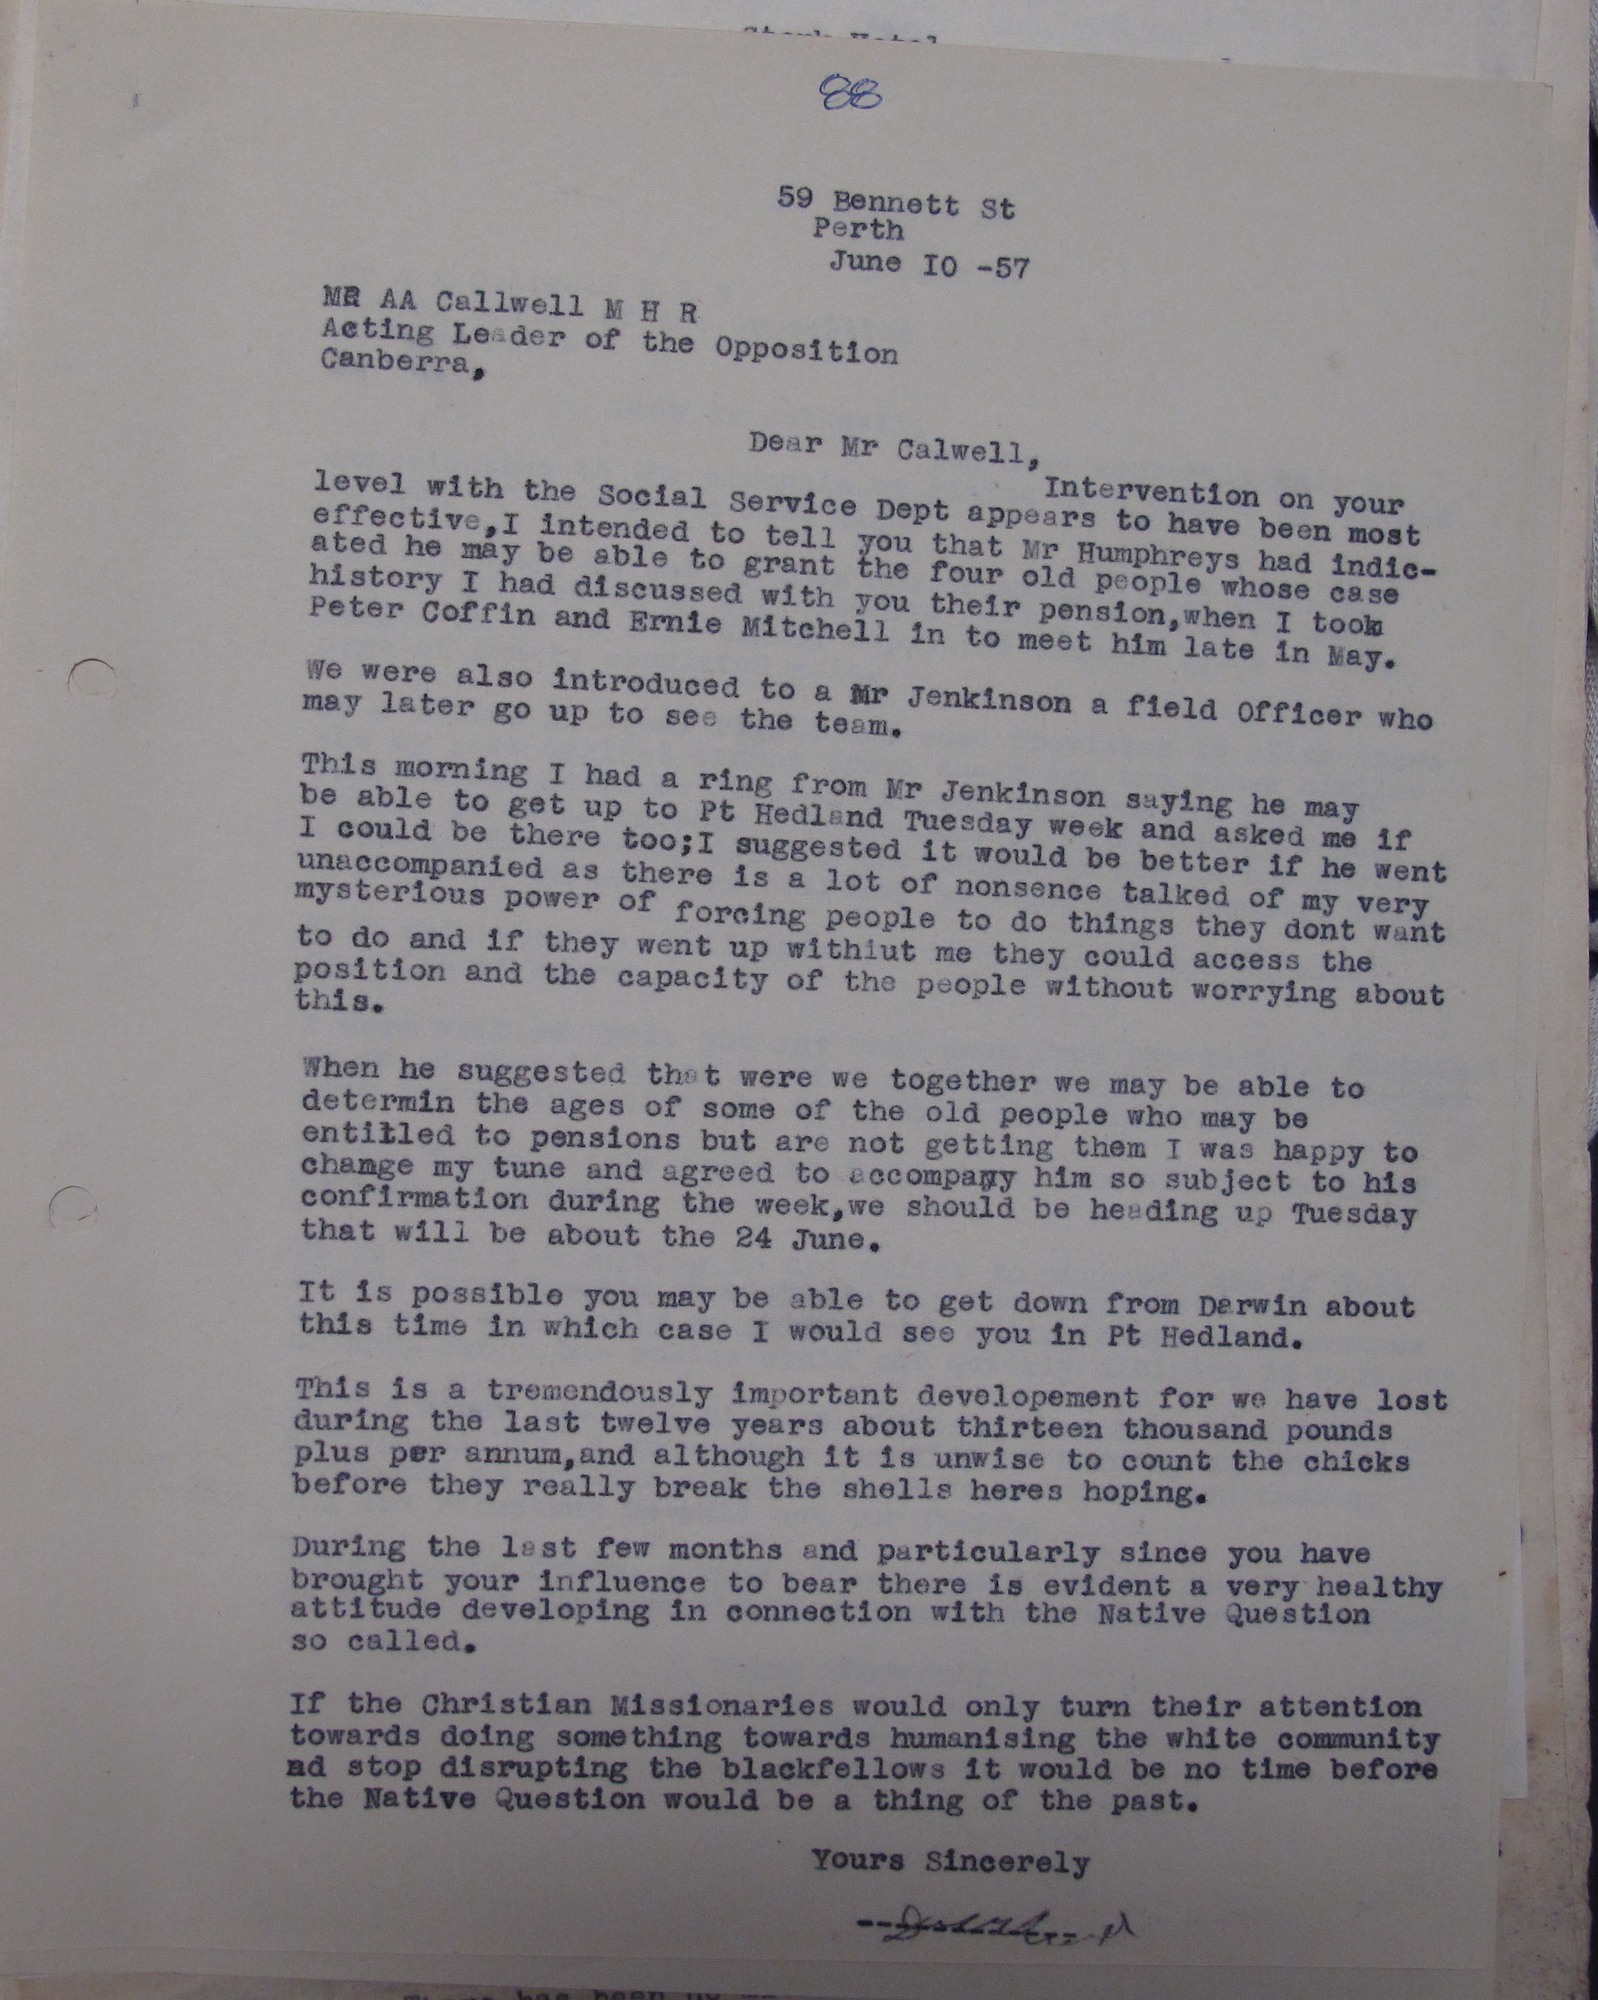 Don McLeod to Arthur Calwell, 10 June 1957